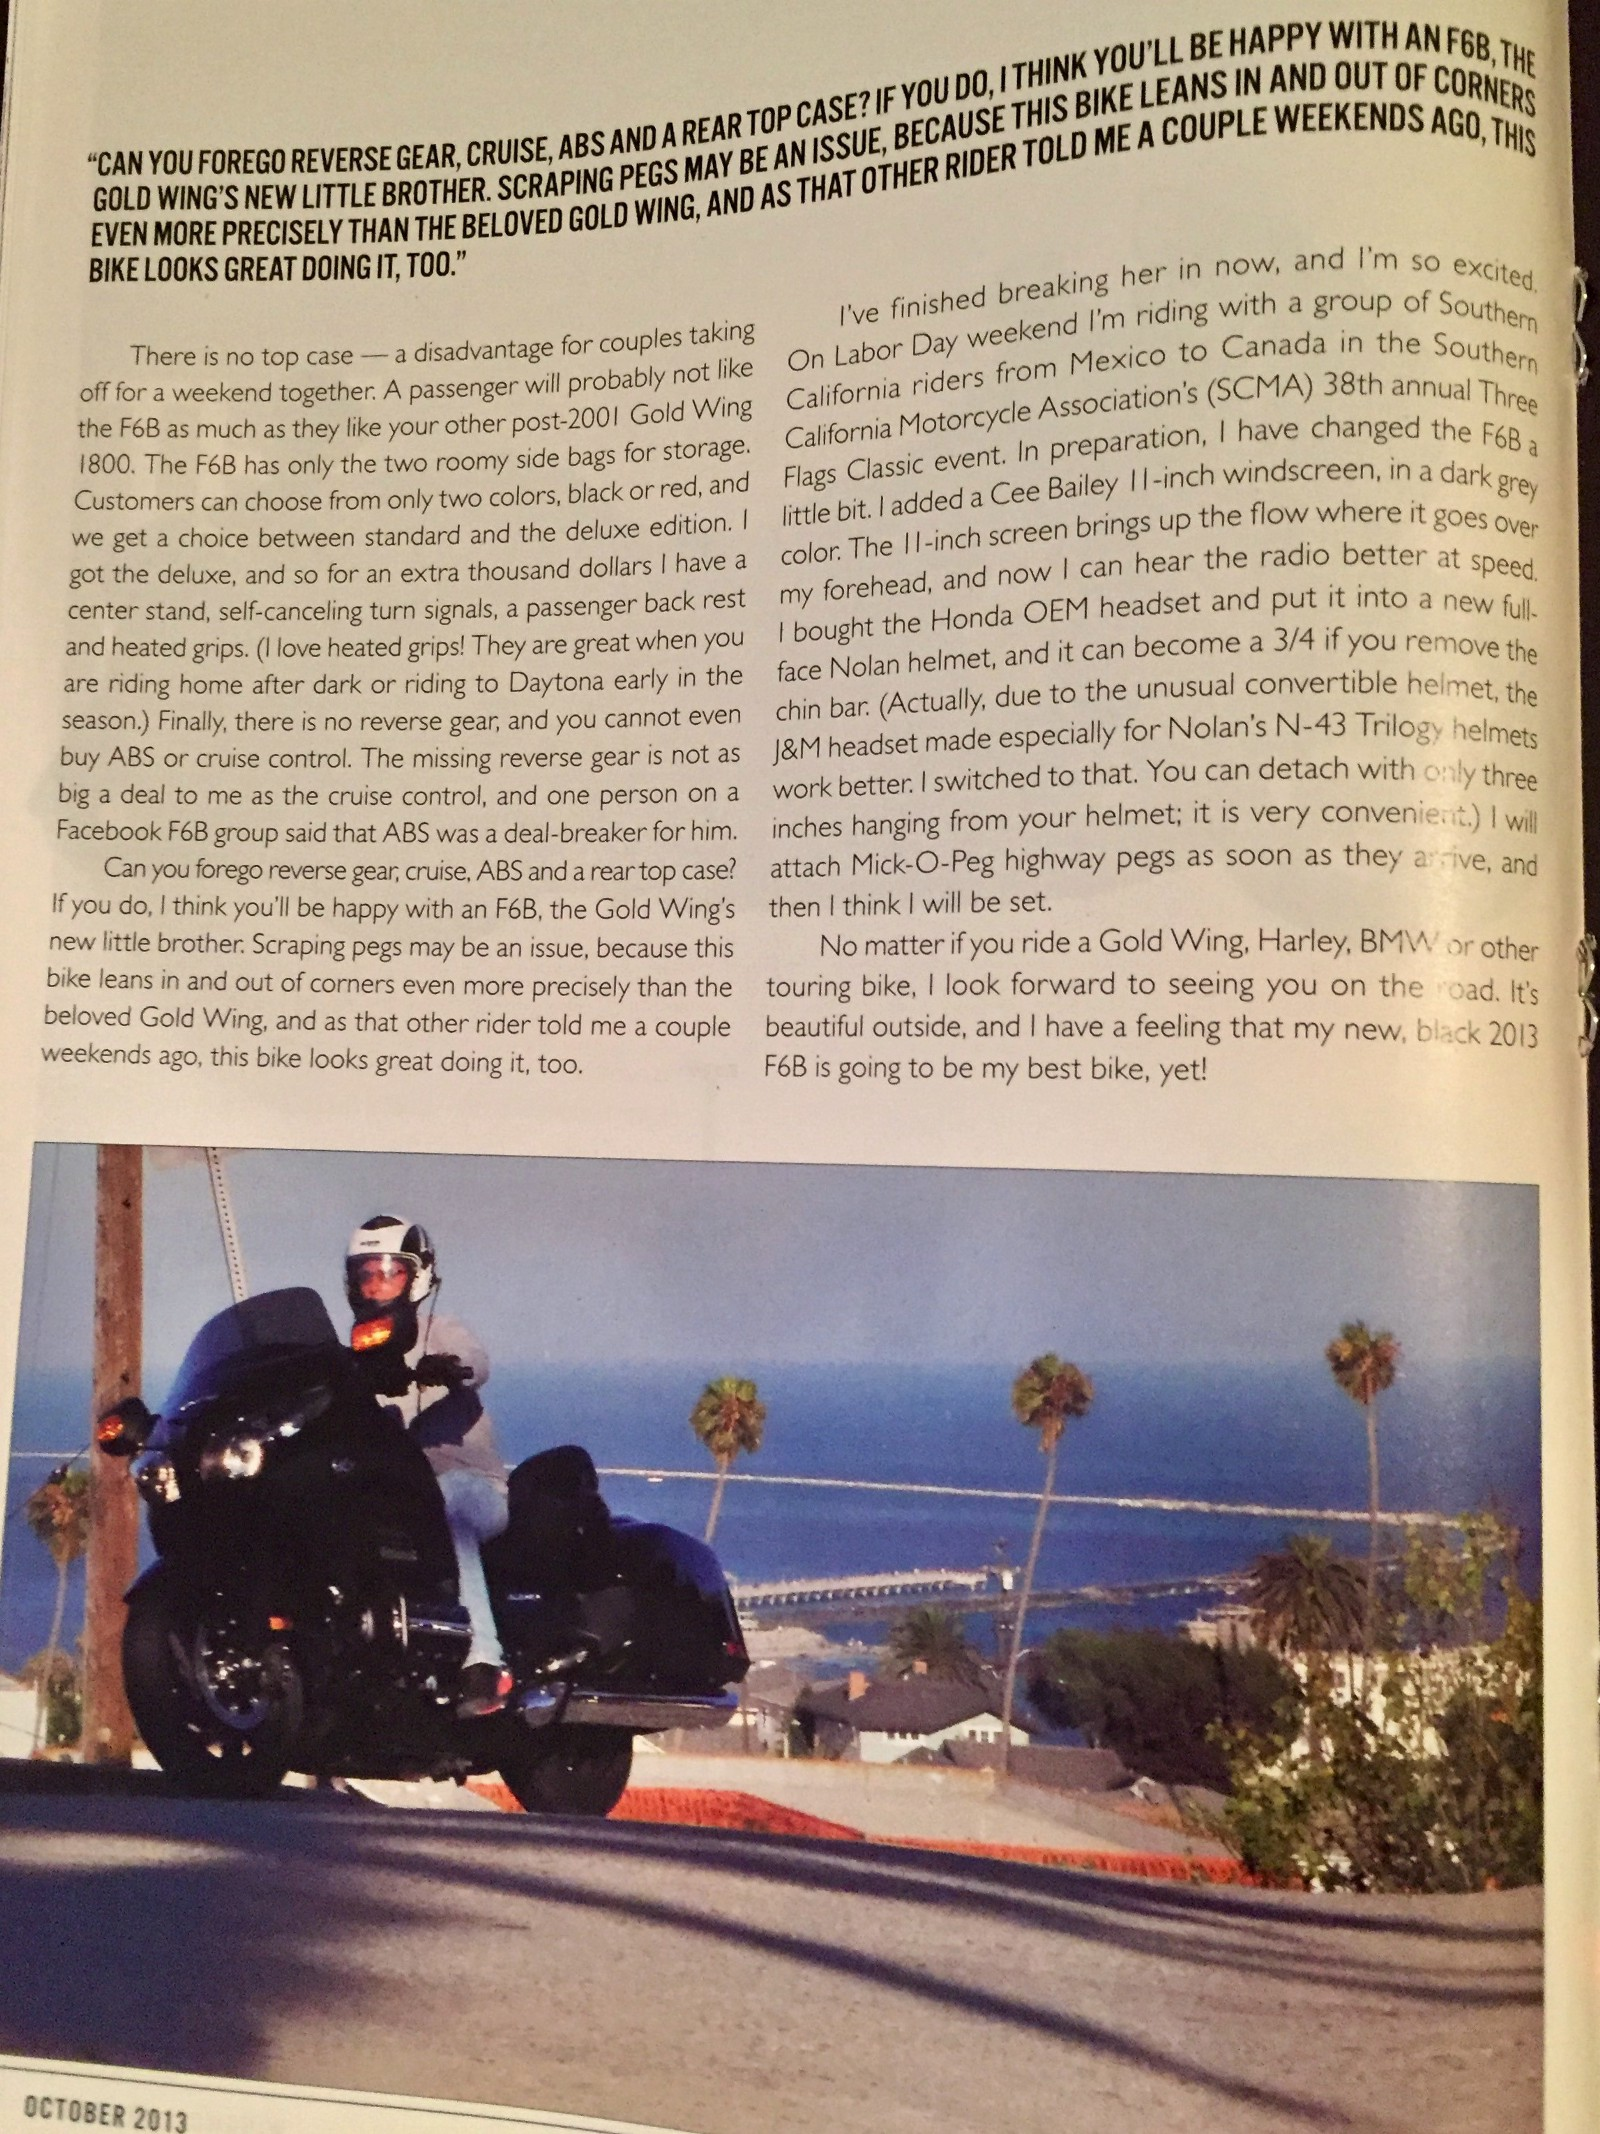 Is There a Cure for Lack-of-Motorcycle Depression? Help!